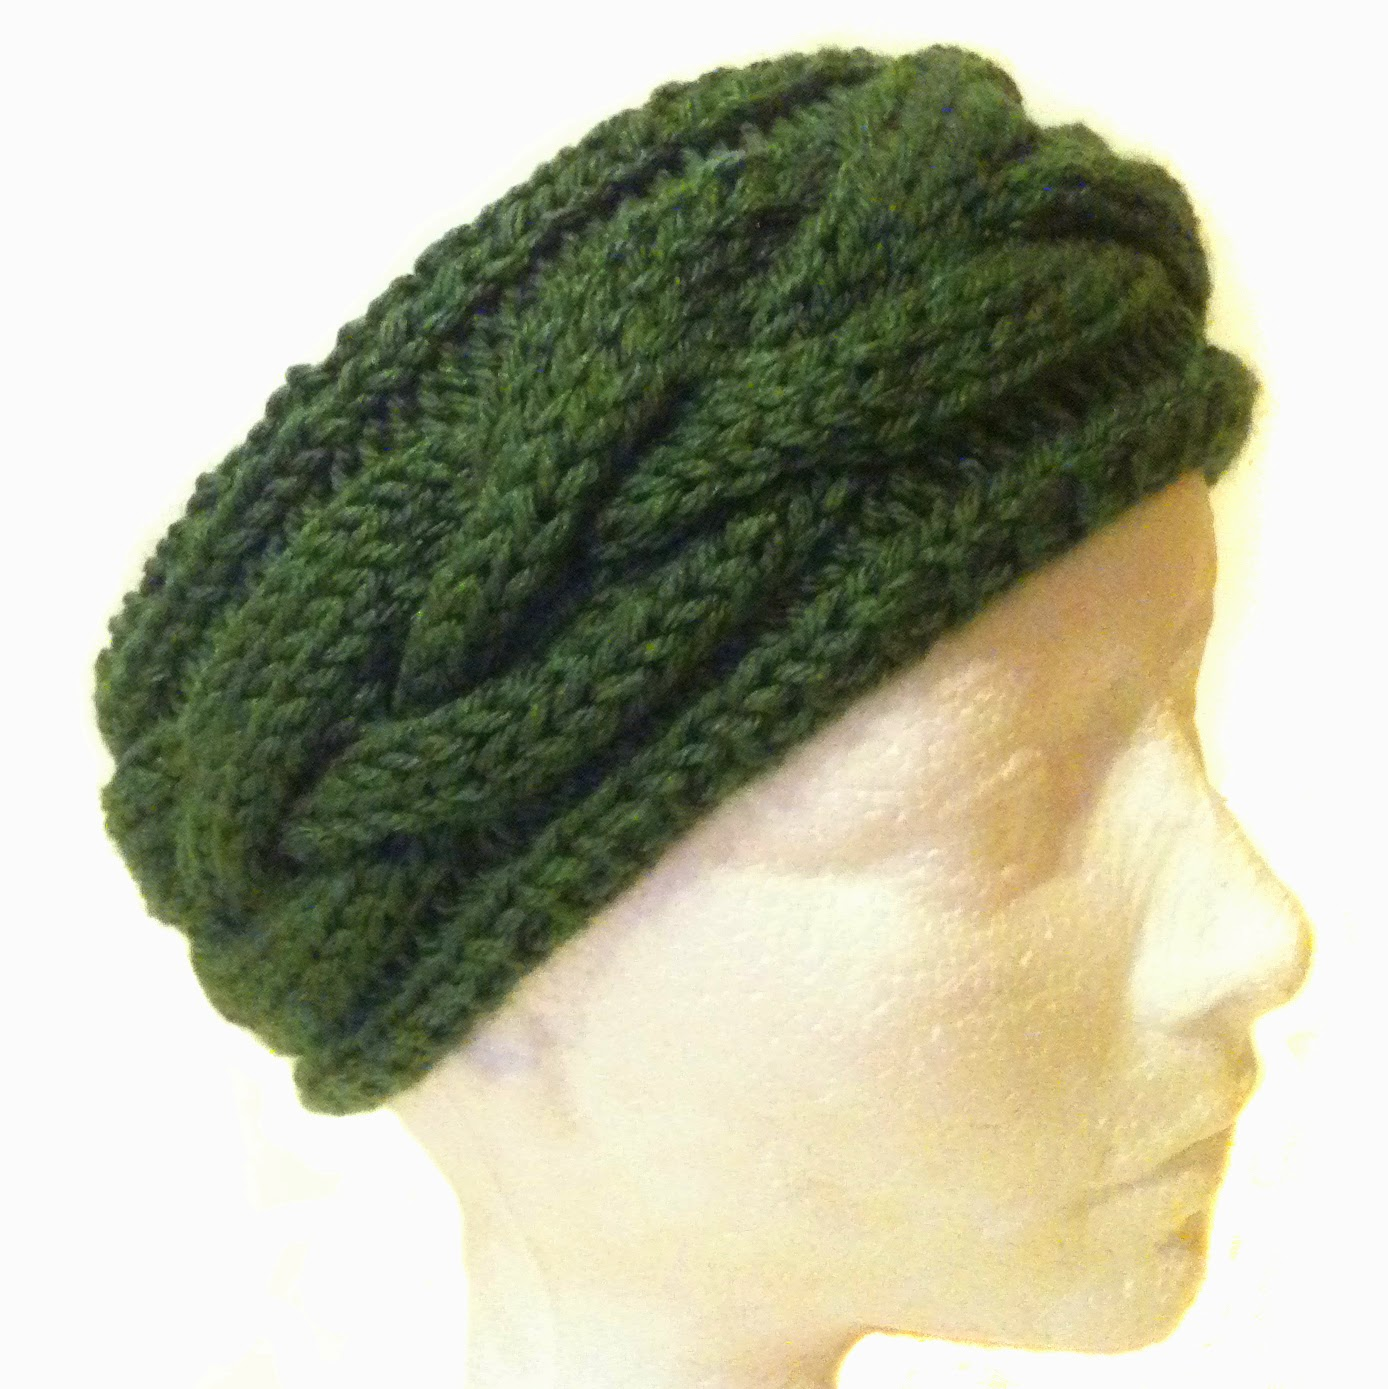 Connemara Plainted Knit Headband